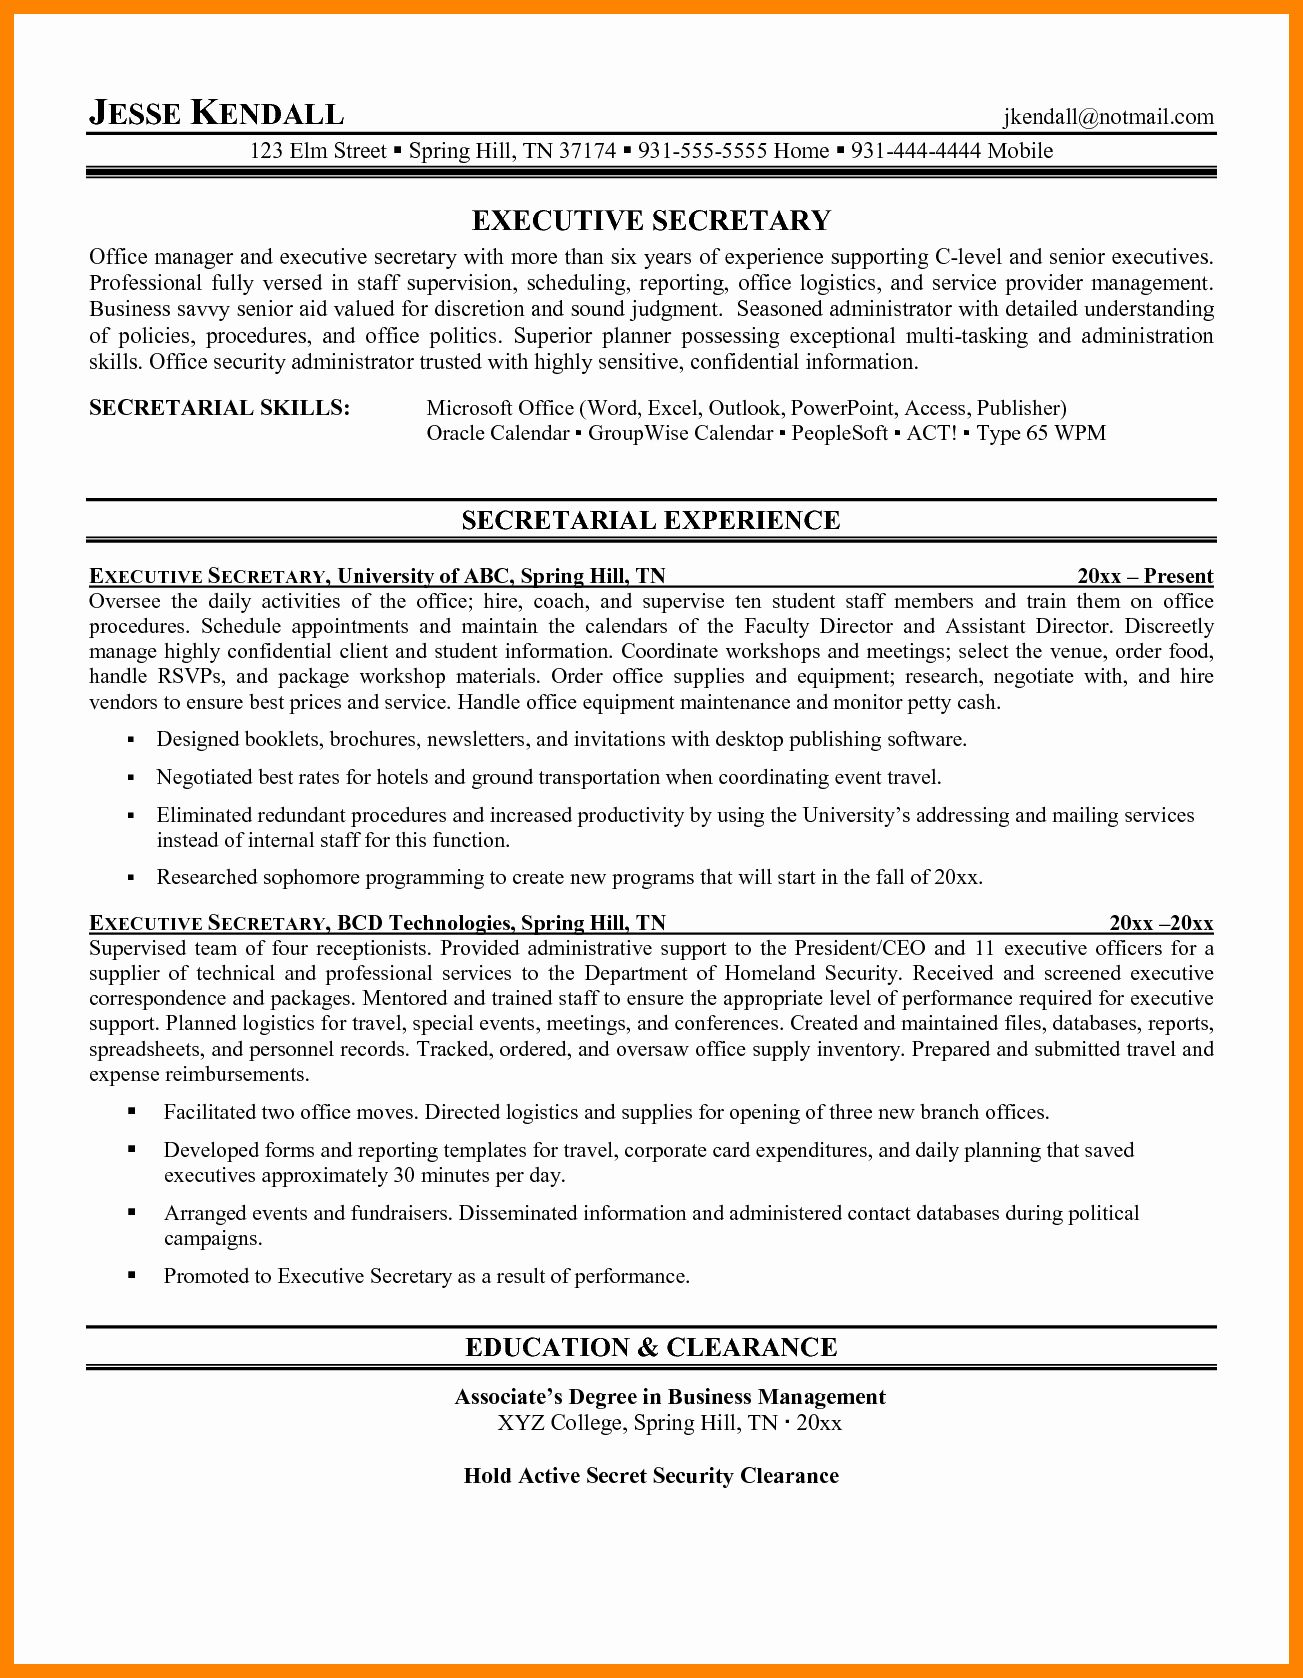 Awards And Acknowledgements Resume Examples Beautiful 10 Secretarial Res In 2020 Resume Cover Letter Examples Resume Objective Examples Administrative Assistant Resume